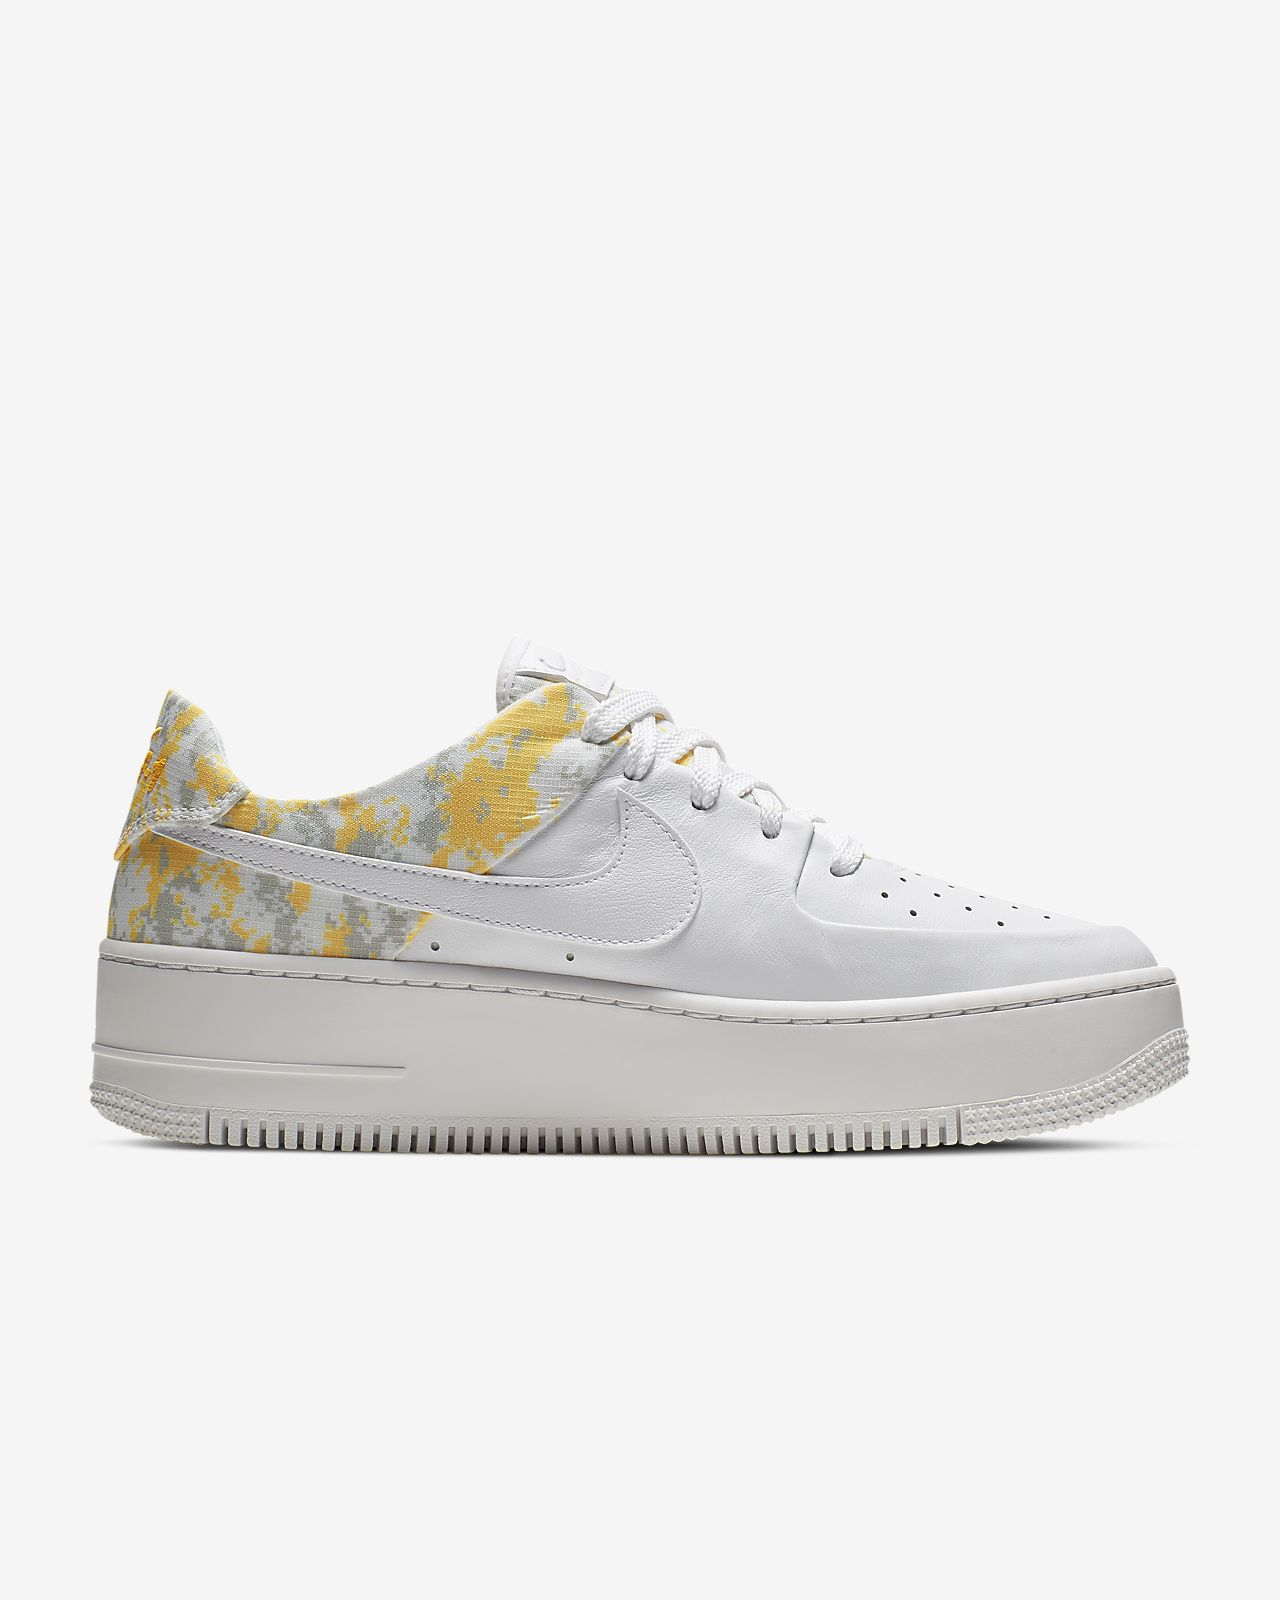 finest selection 48c8c b10b5 Buty damskie Nike Air Force 1 Sage Low Premium Camo. Nike.com PL